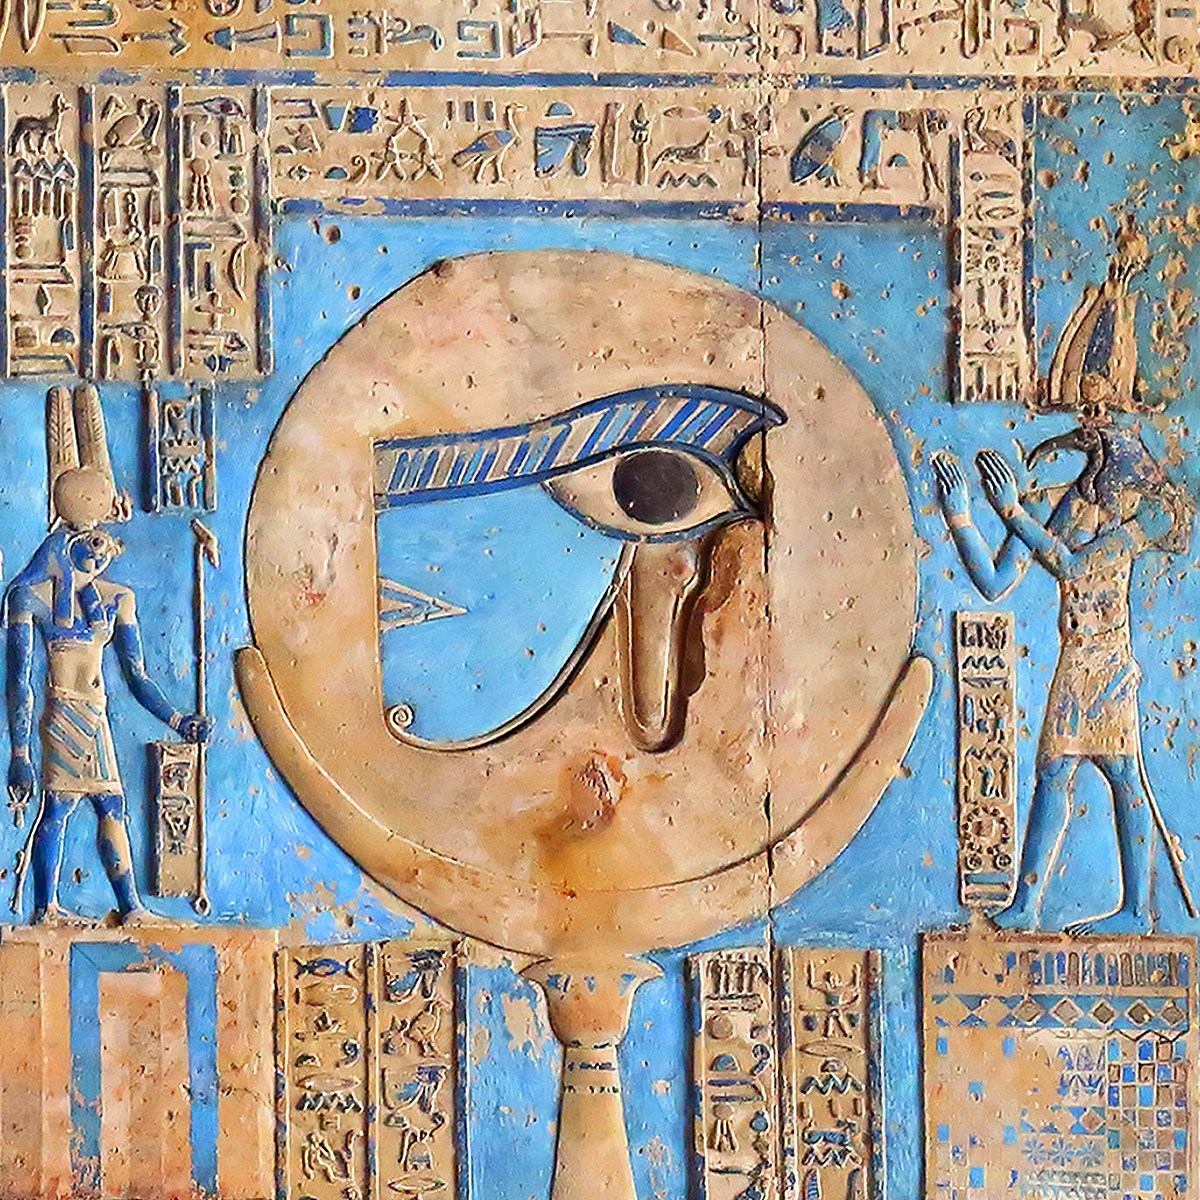 Seership Training Eye of Horus